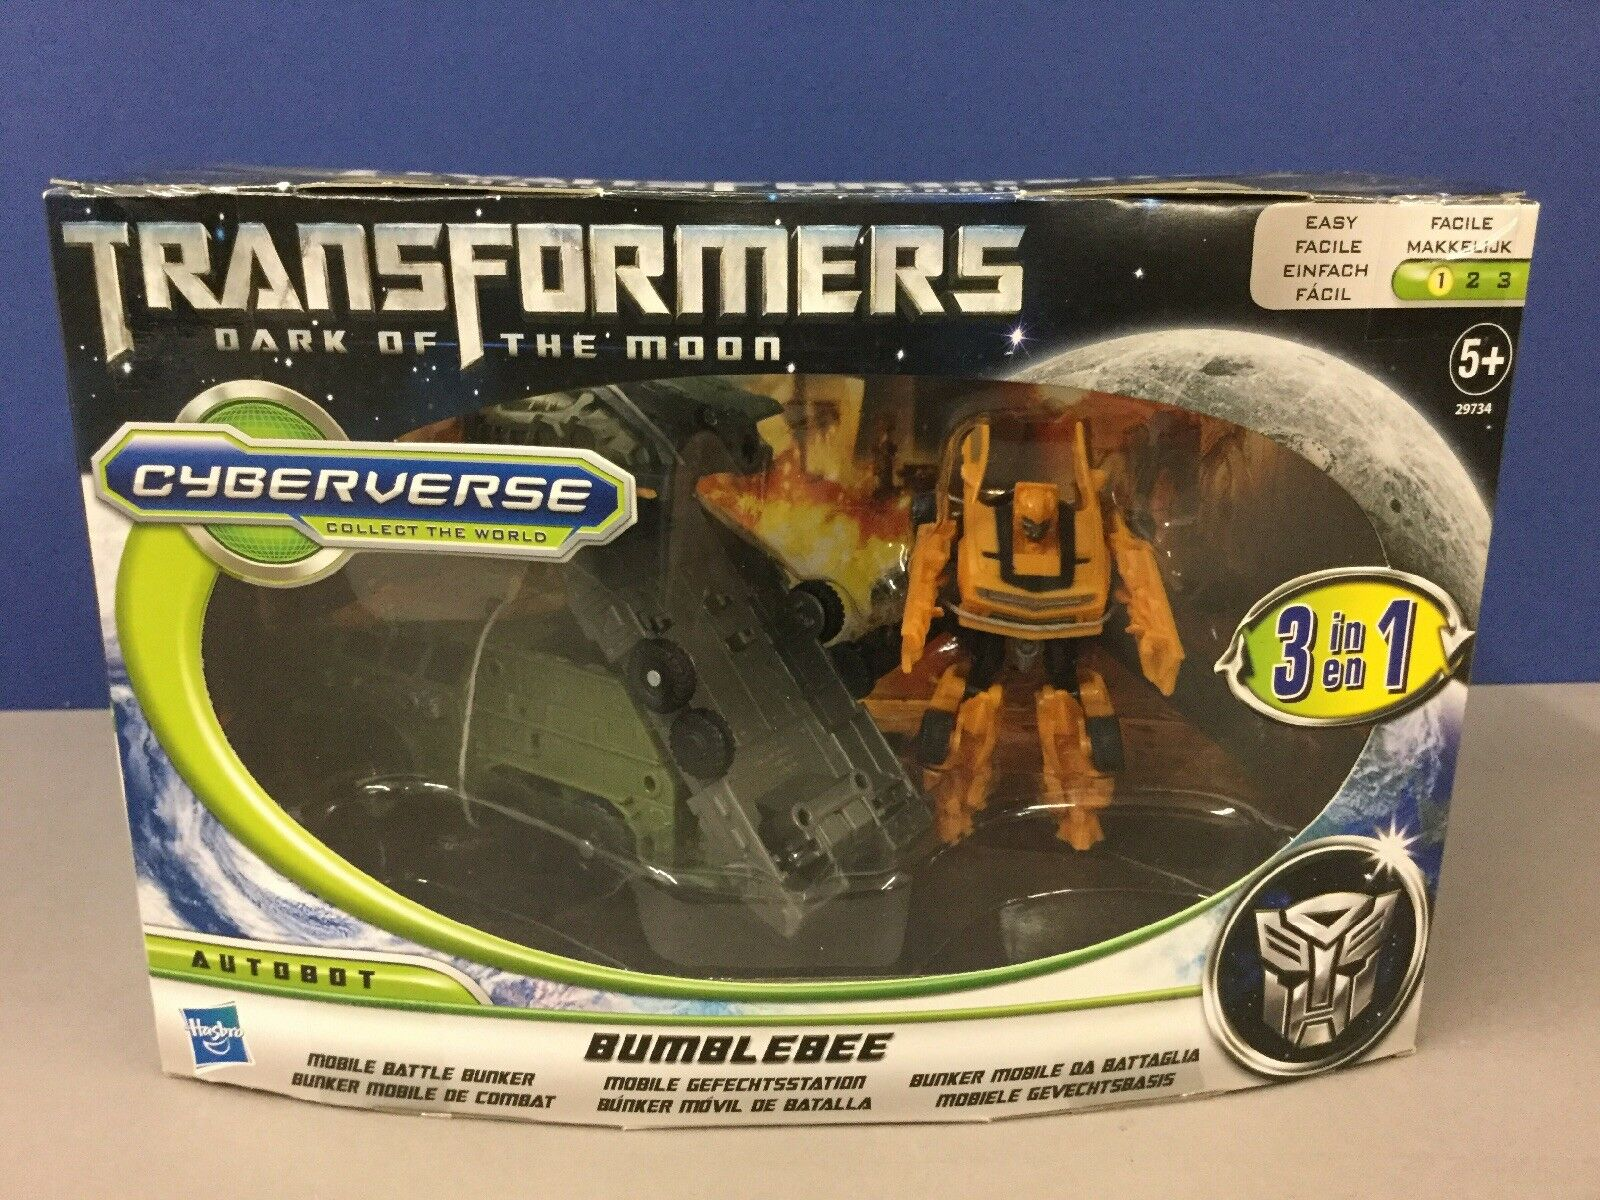 Transformers Cyberverse-Bumblebee Mobile Battle Station 3 in 1